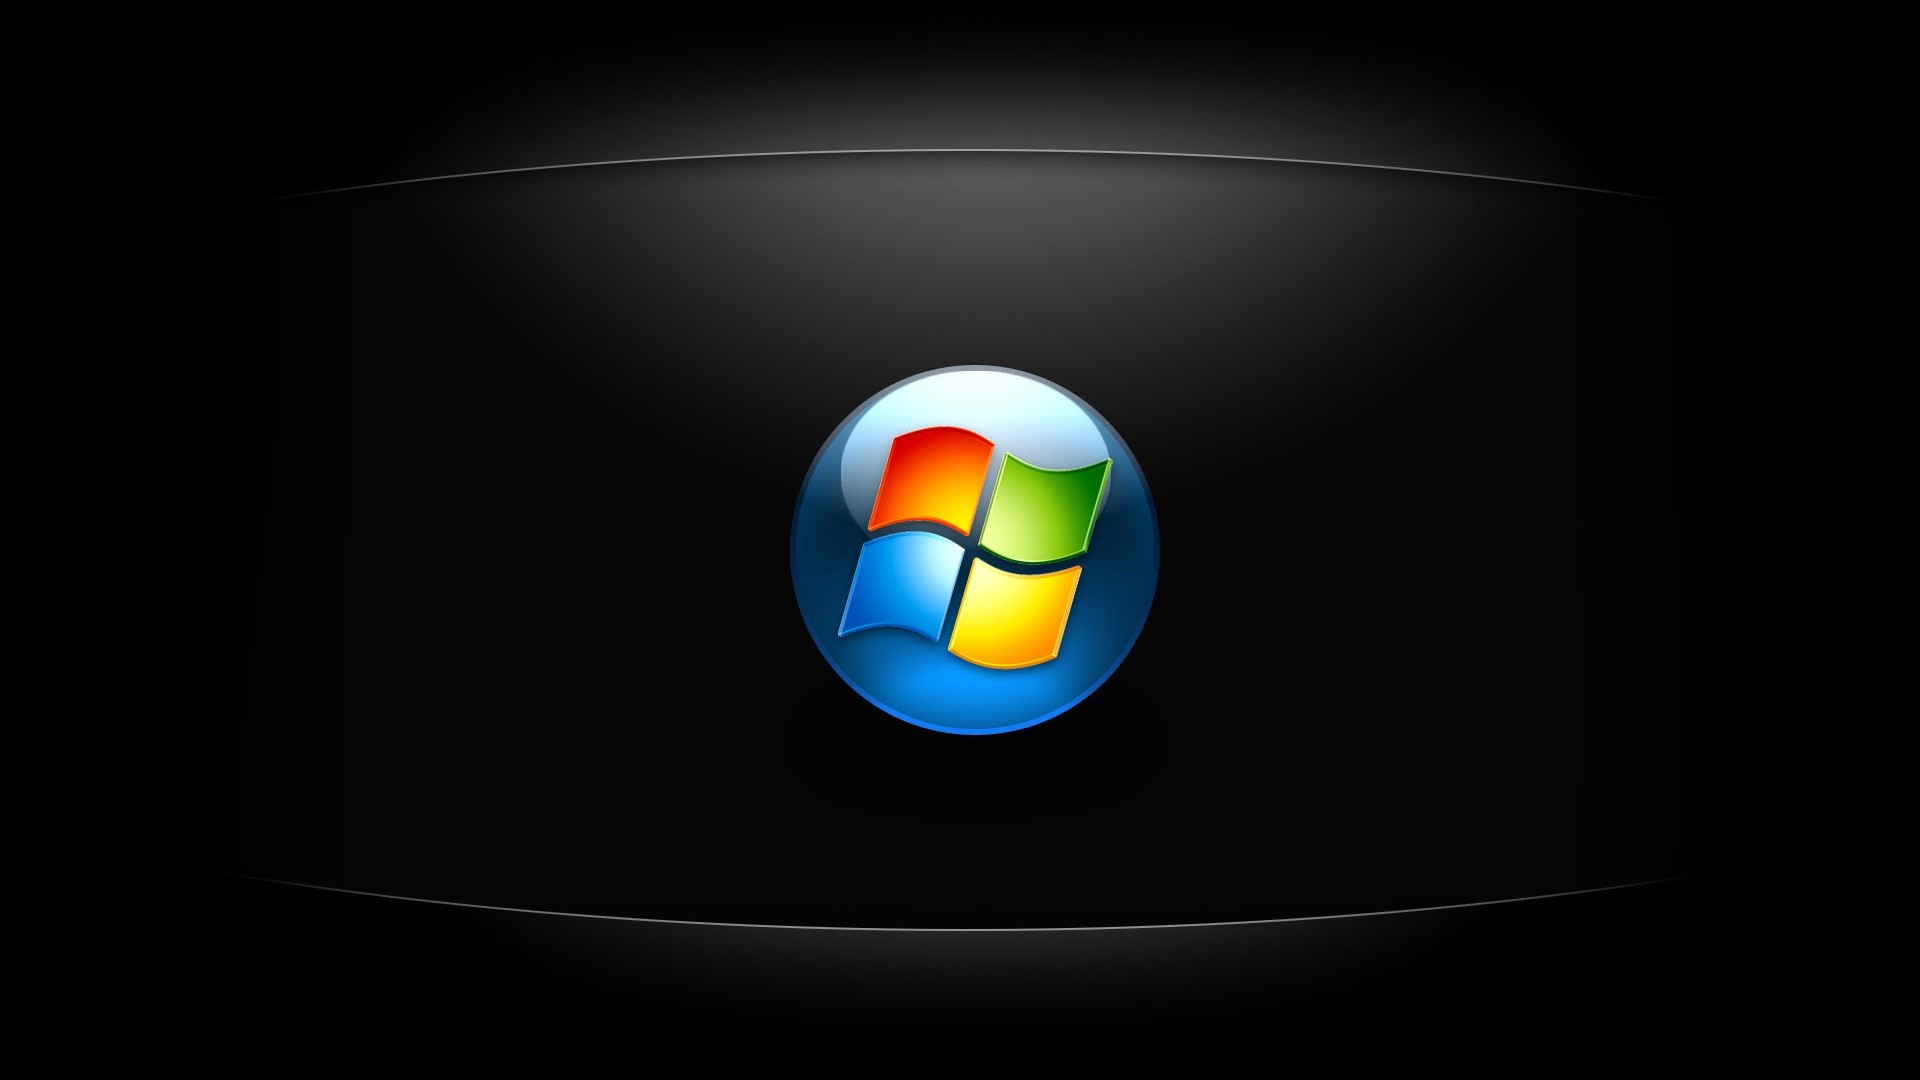 Dark Windows 7 Hd Wallpaper High Definition High Resolution Hd Wallpapers